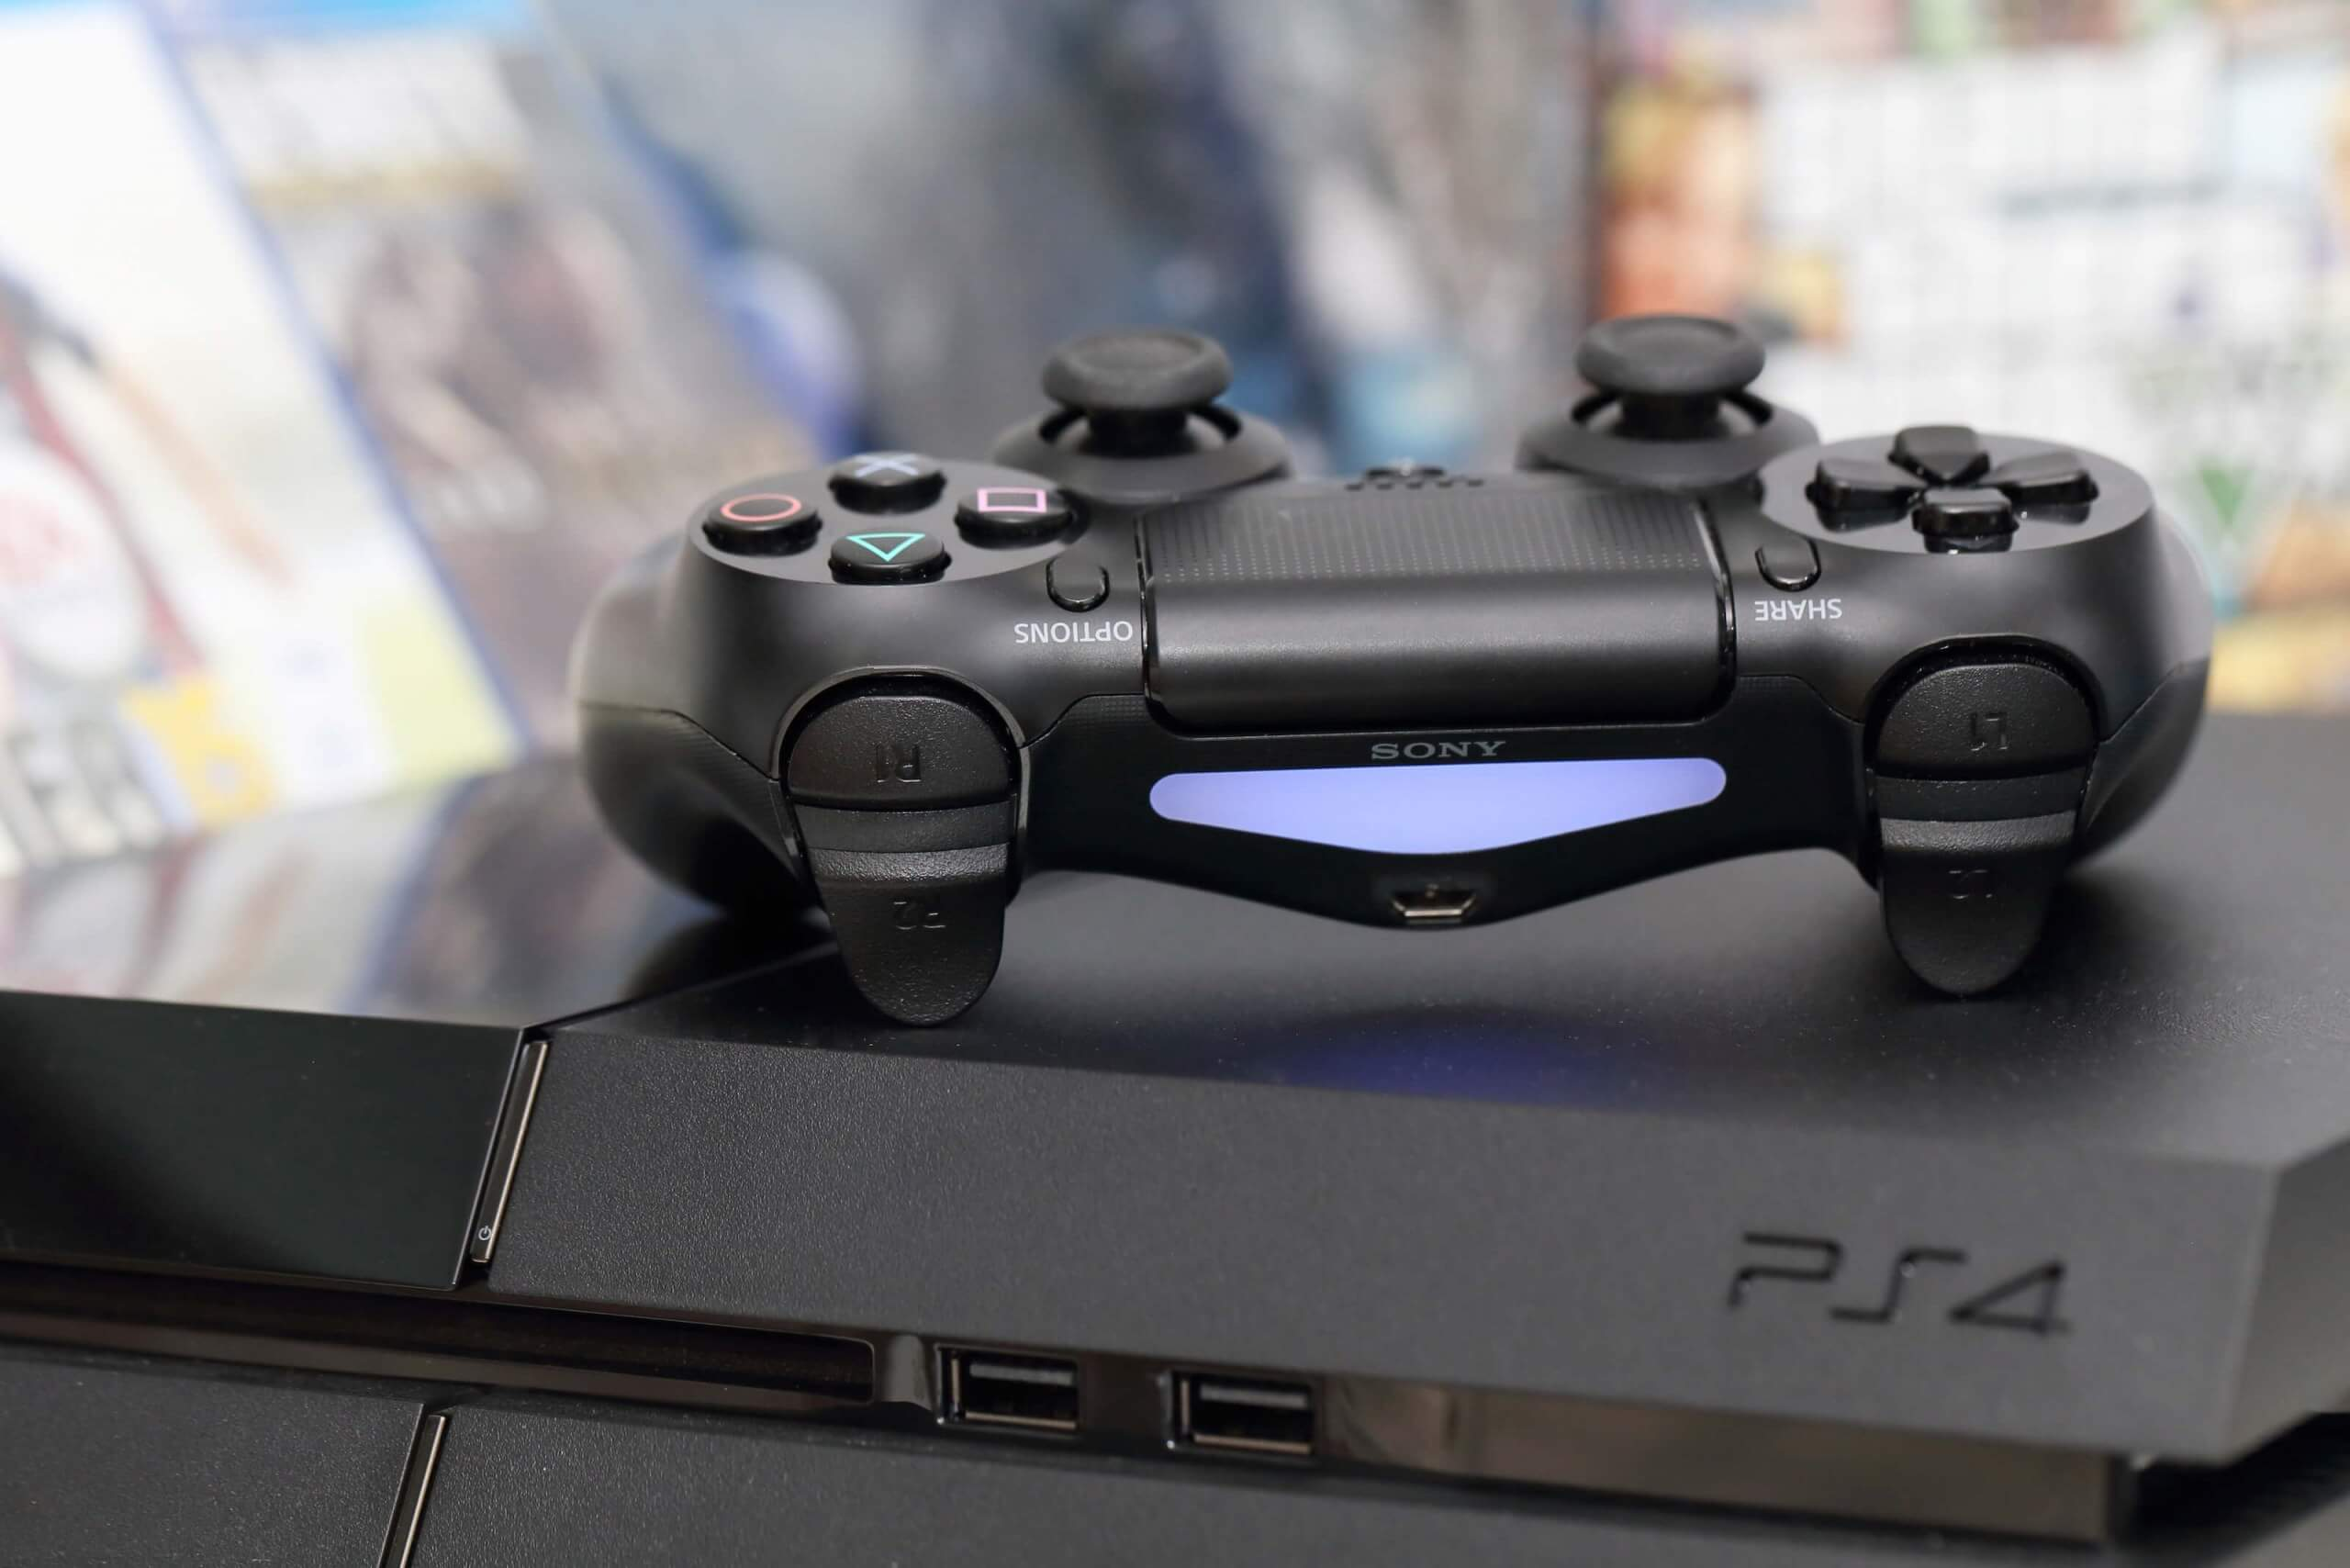 After six years Sony finally opens up the PS4 to cross-platform multiplayer support